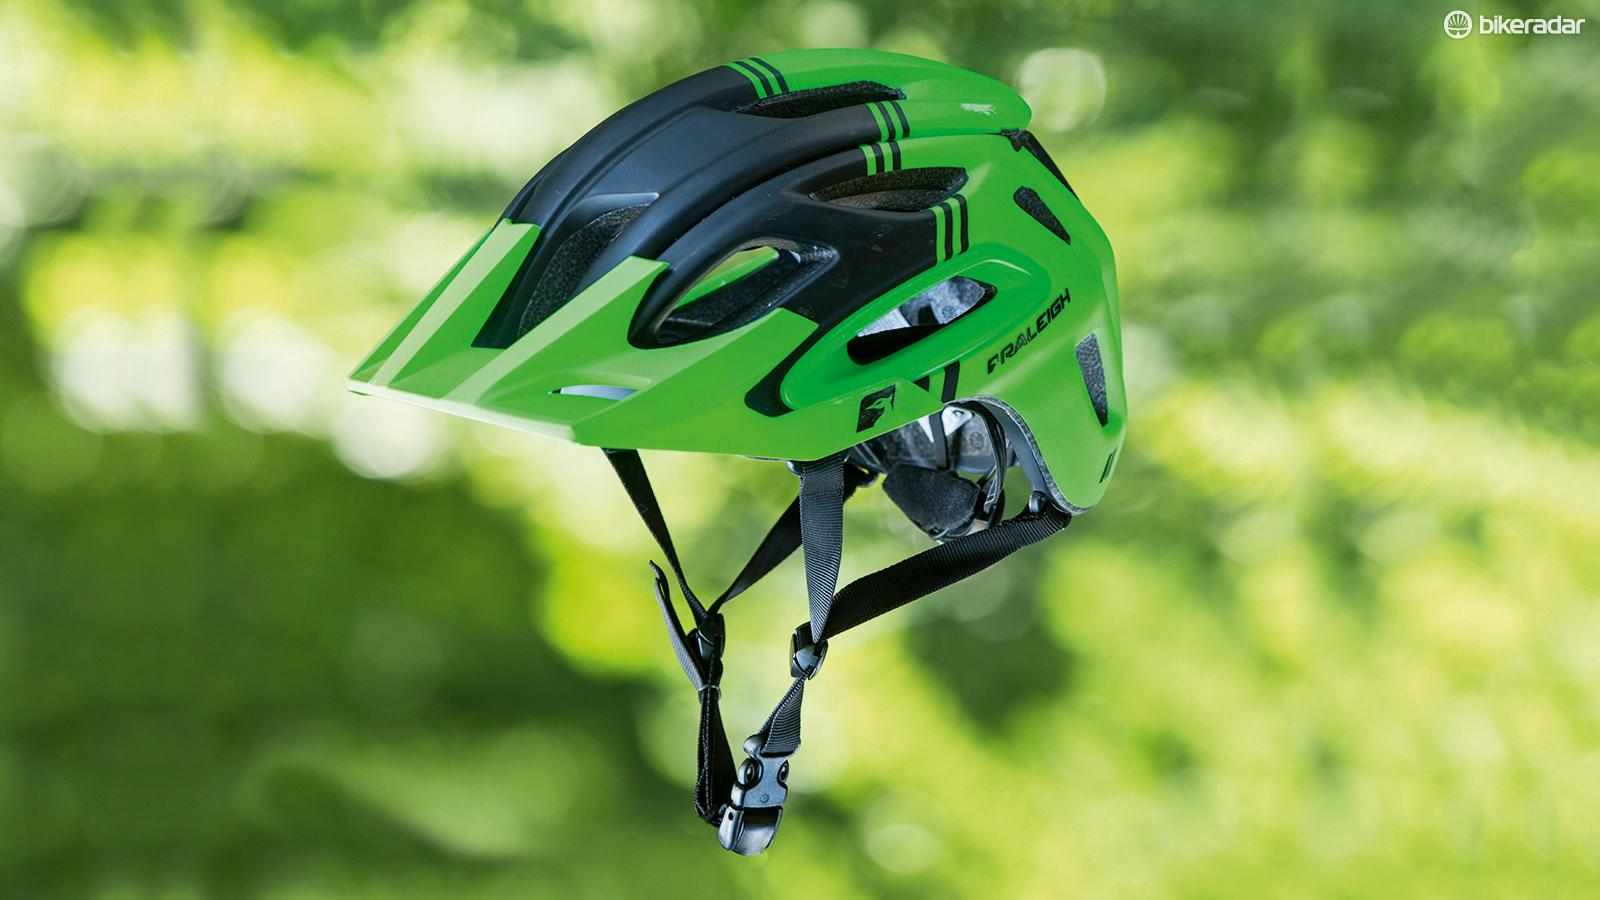 Raleigh's Magni helmet is well ventilated and nicely constructed for the price